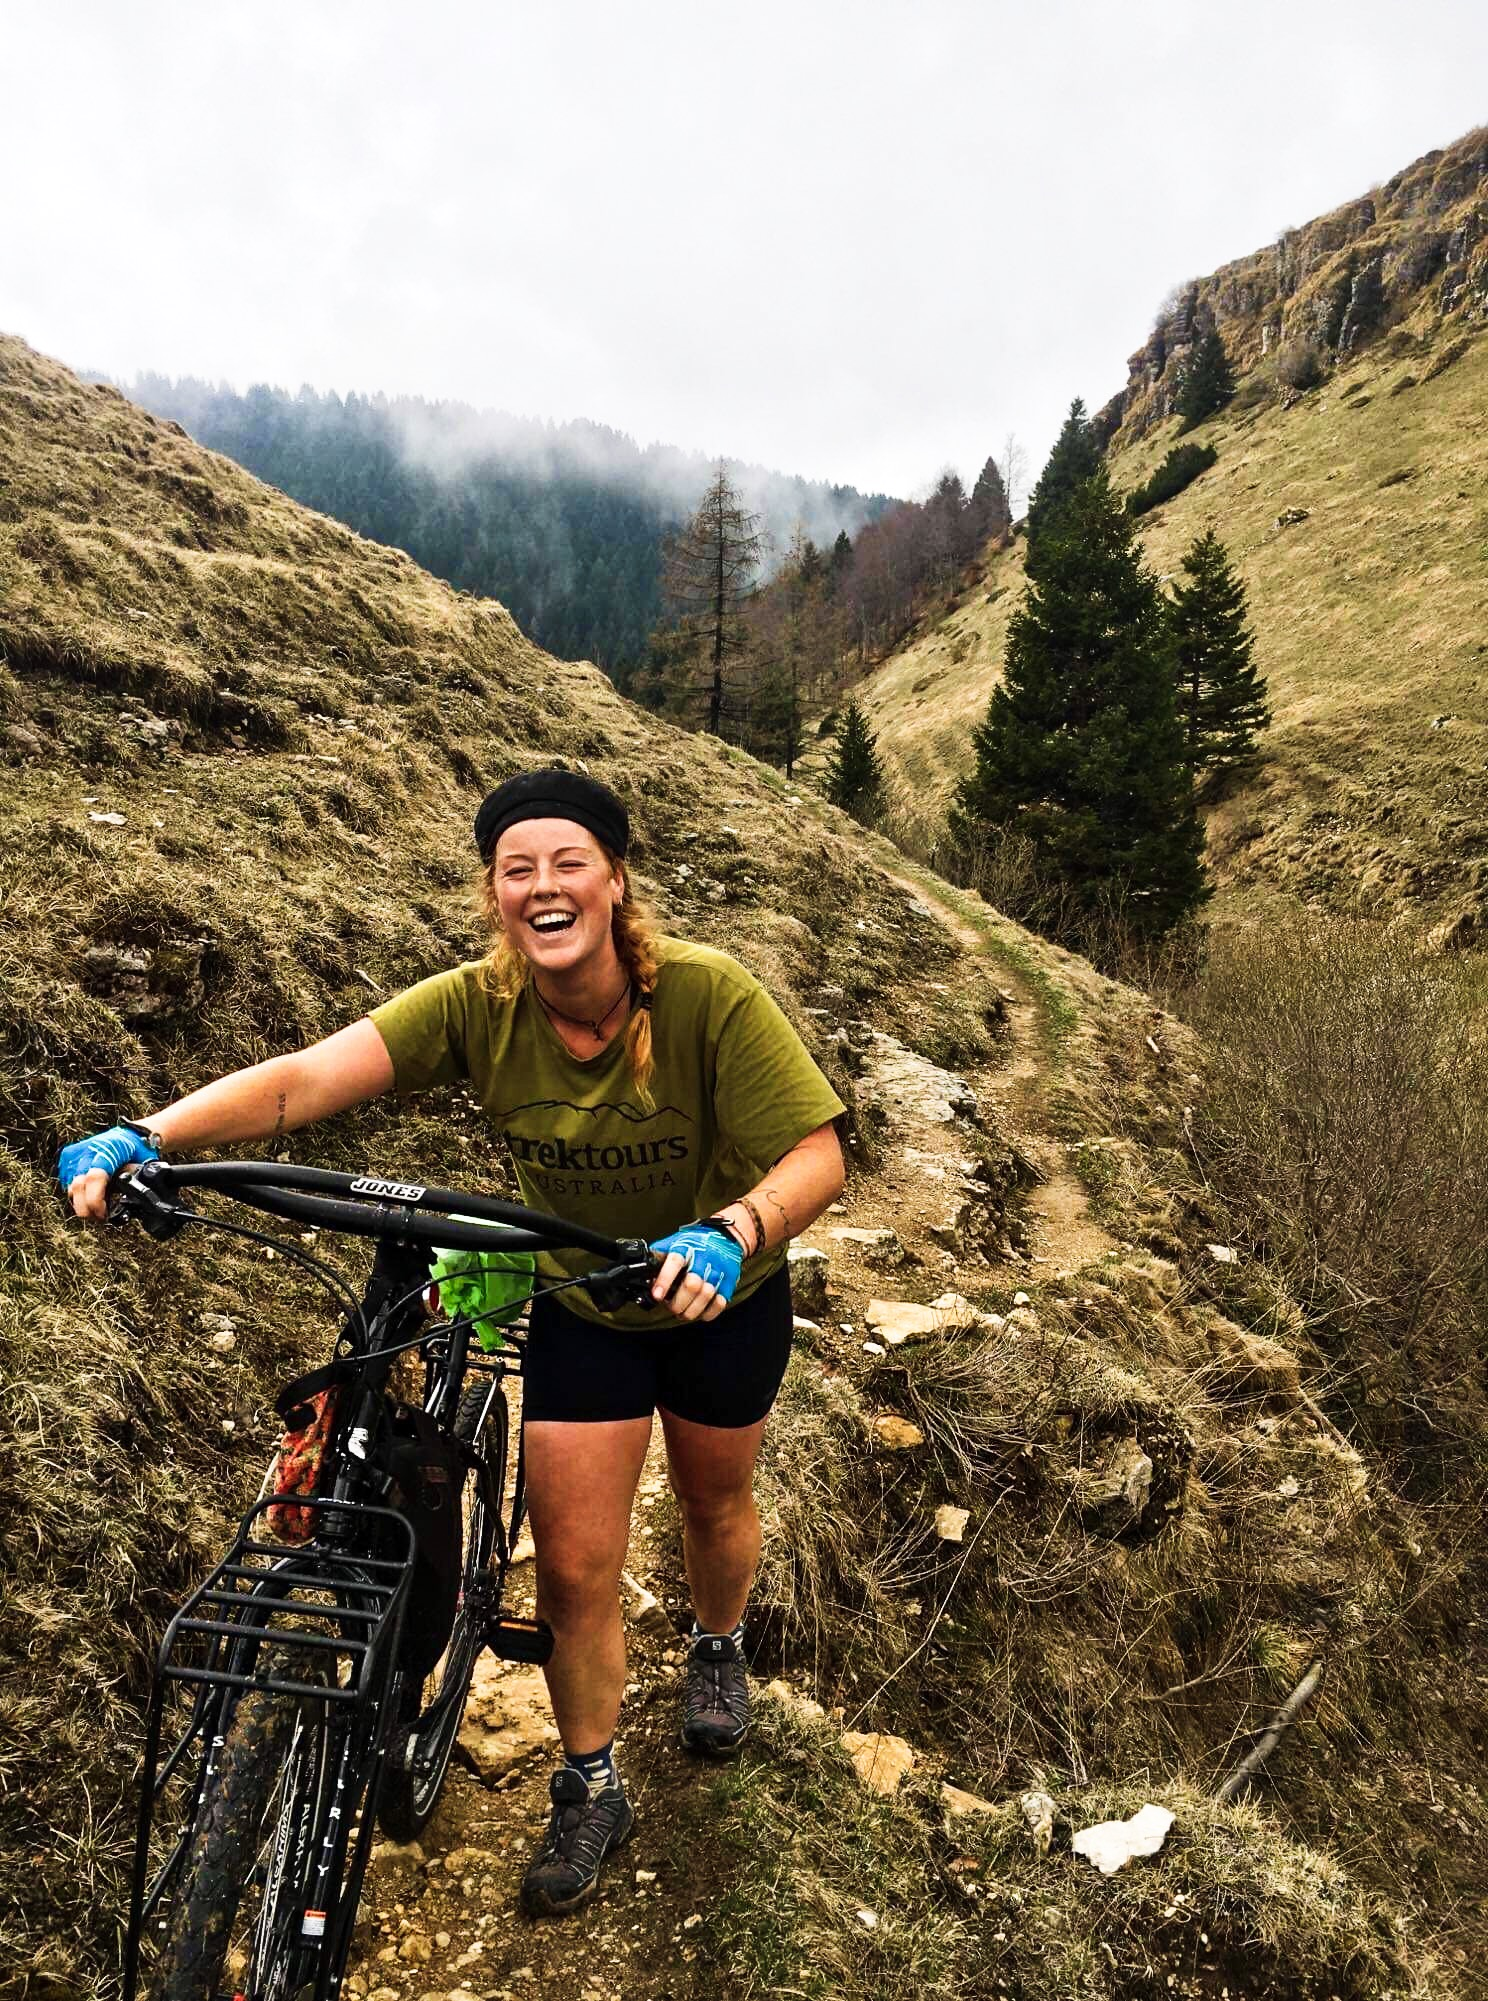 Zoe Nicholson - Instagram - zoenicholson27 (Zoe Freckleson)Favourite snack? - Almonds or a good crunchy muesli.Favourite brew? - To sit down and have a chat with people is a SUPER FROTHY soy cappuccino with some honey in it!About you. - Hiking has been my main activity for a long time as I work as an outdoor wilderness guide yet now I am getting into the new adventure medium of bike touring whilst I am traveling. It has been a wicked adventure so far! I am really enjoying it as I am able to combine my passion of being in the outdoors with being able to cover a lot more distances.